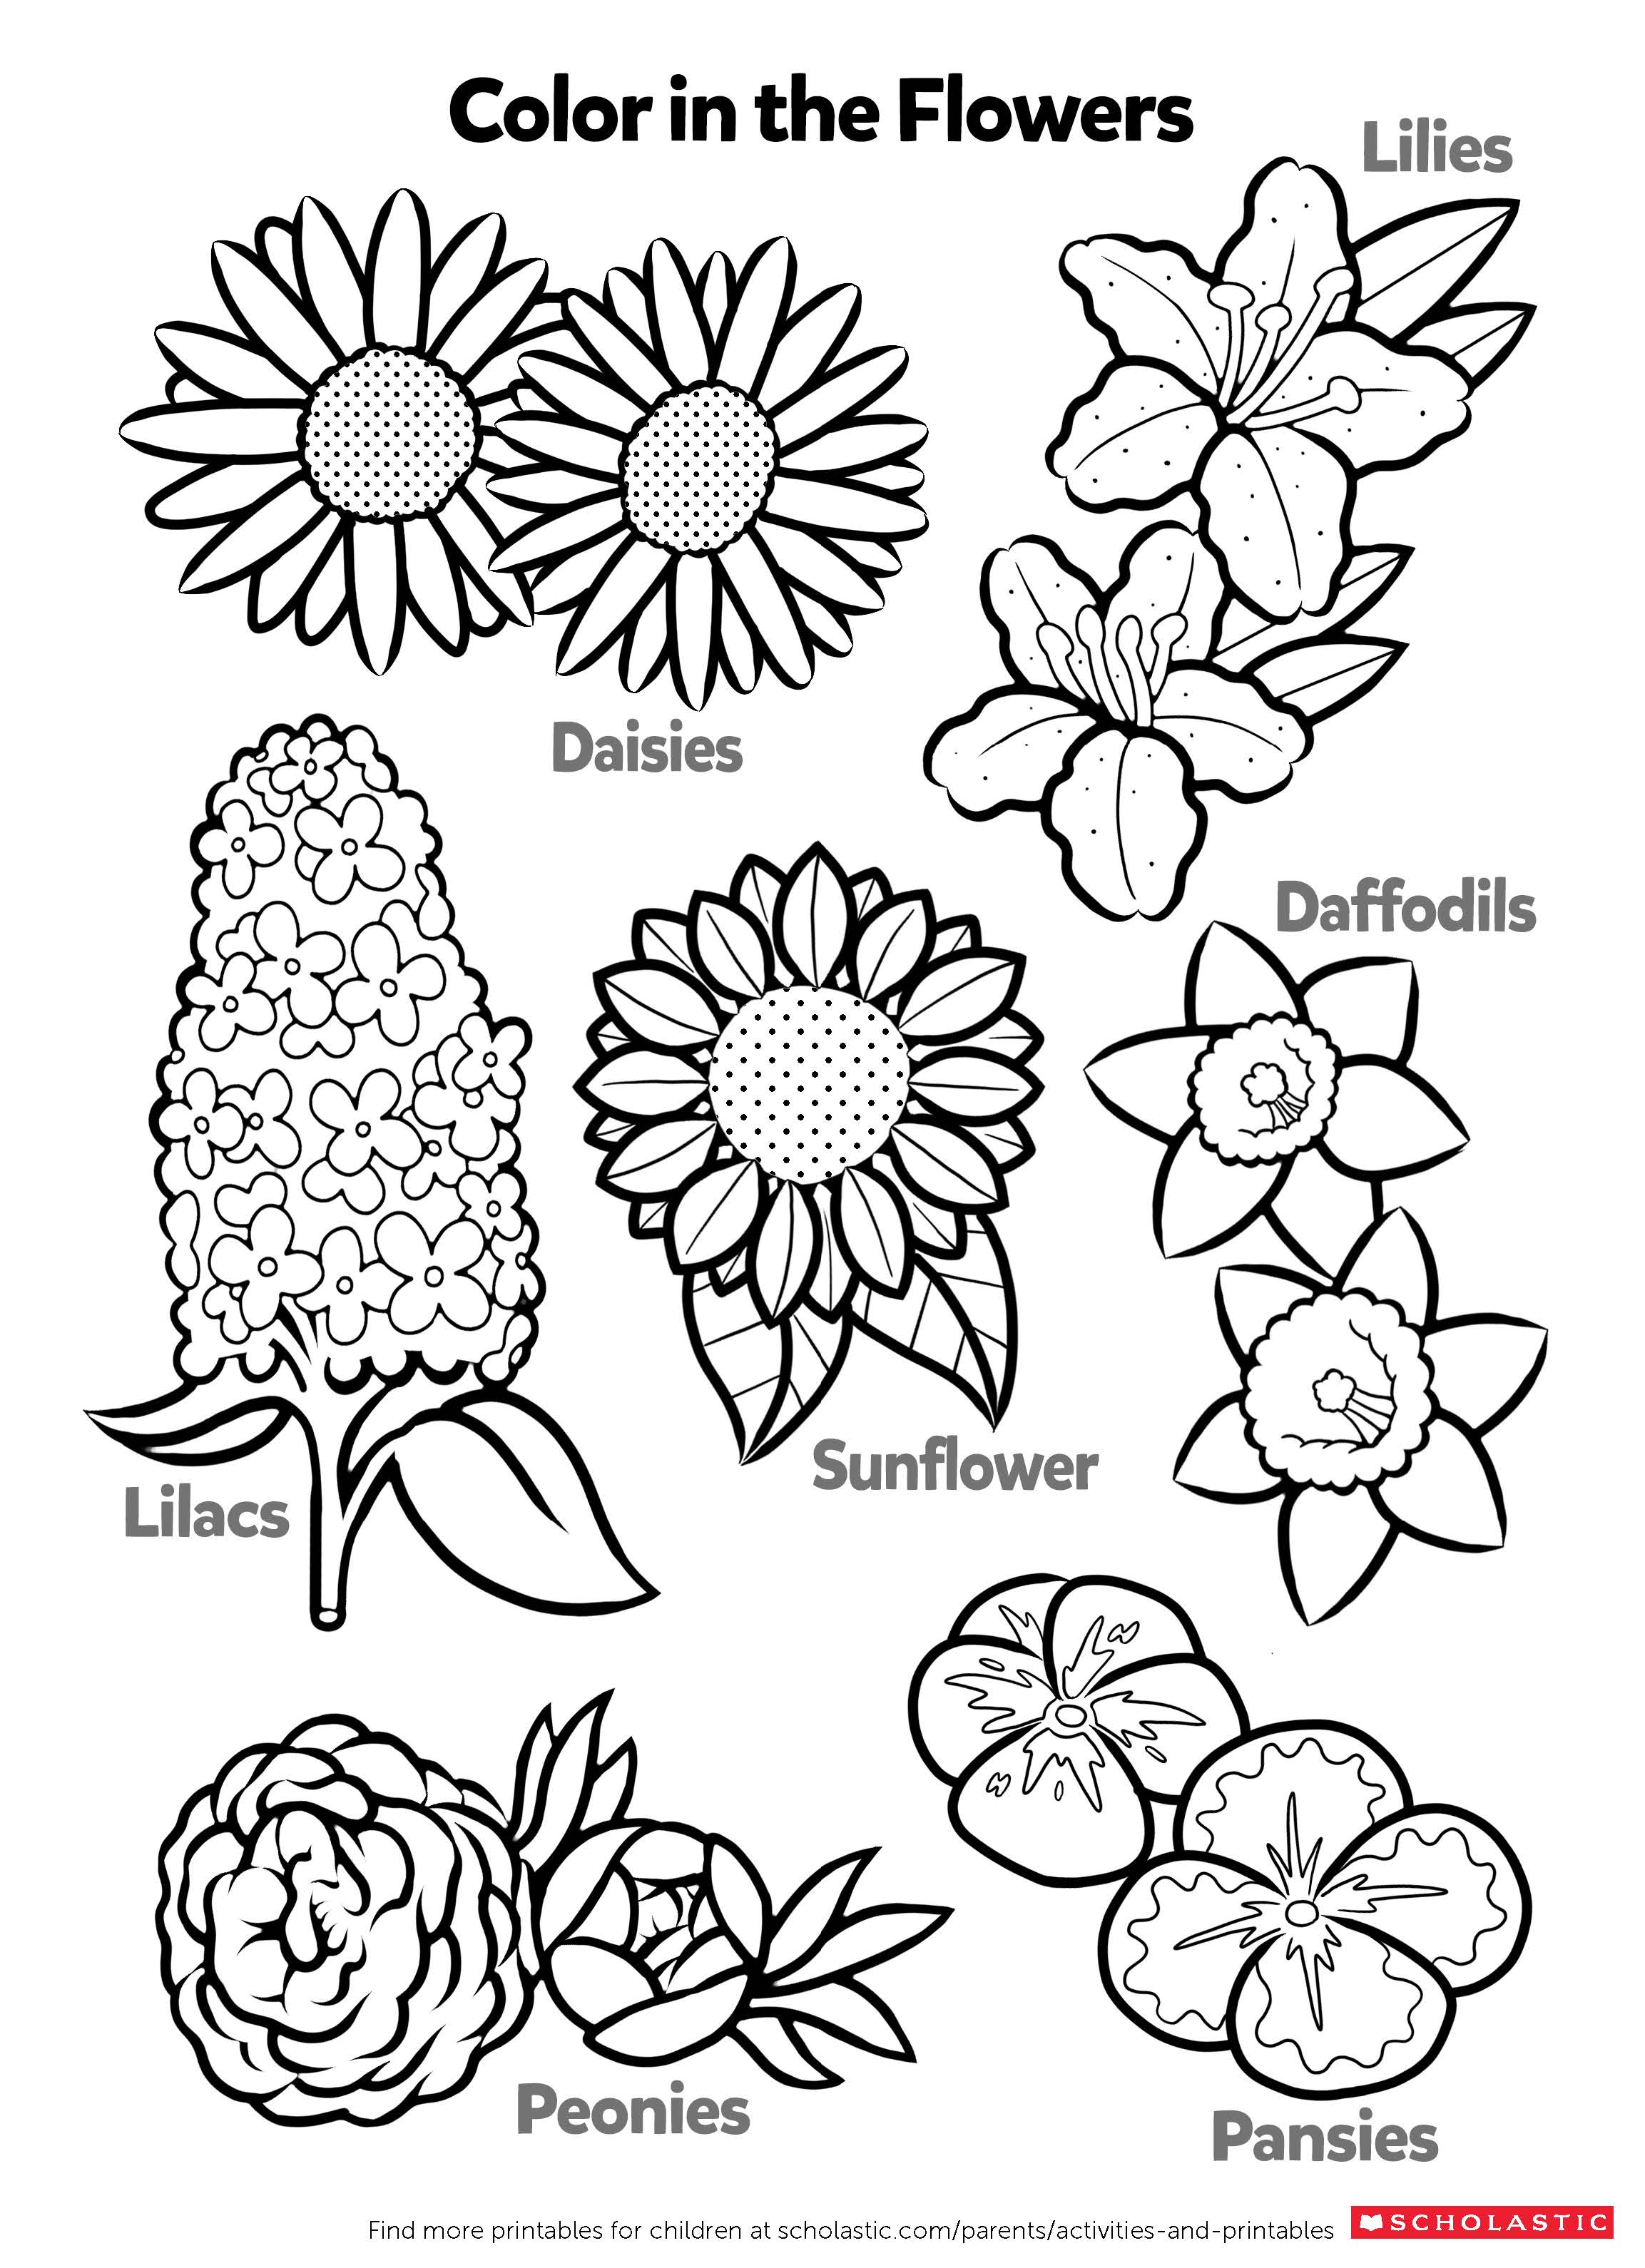 coloring worksheets learn about flowers by coloring worksheets printables worksheets coloring